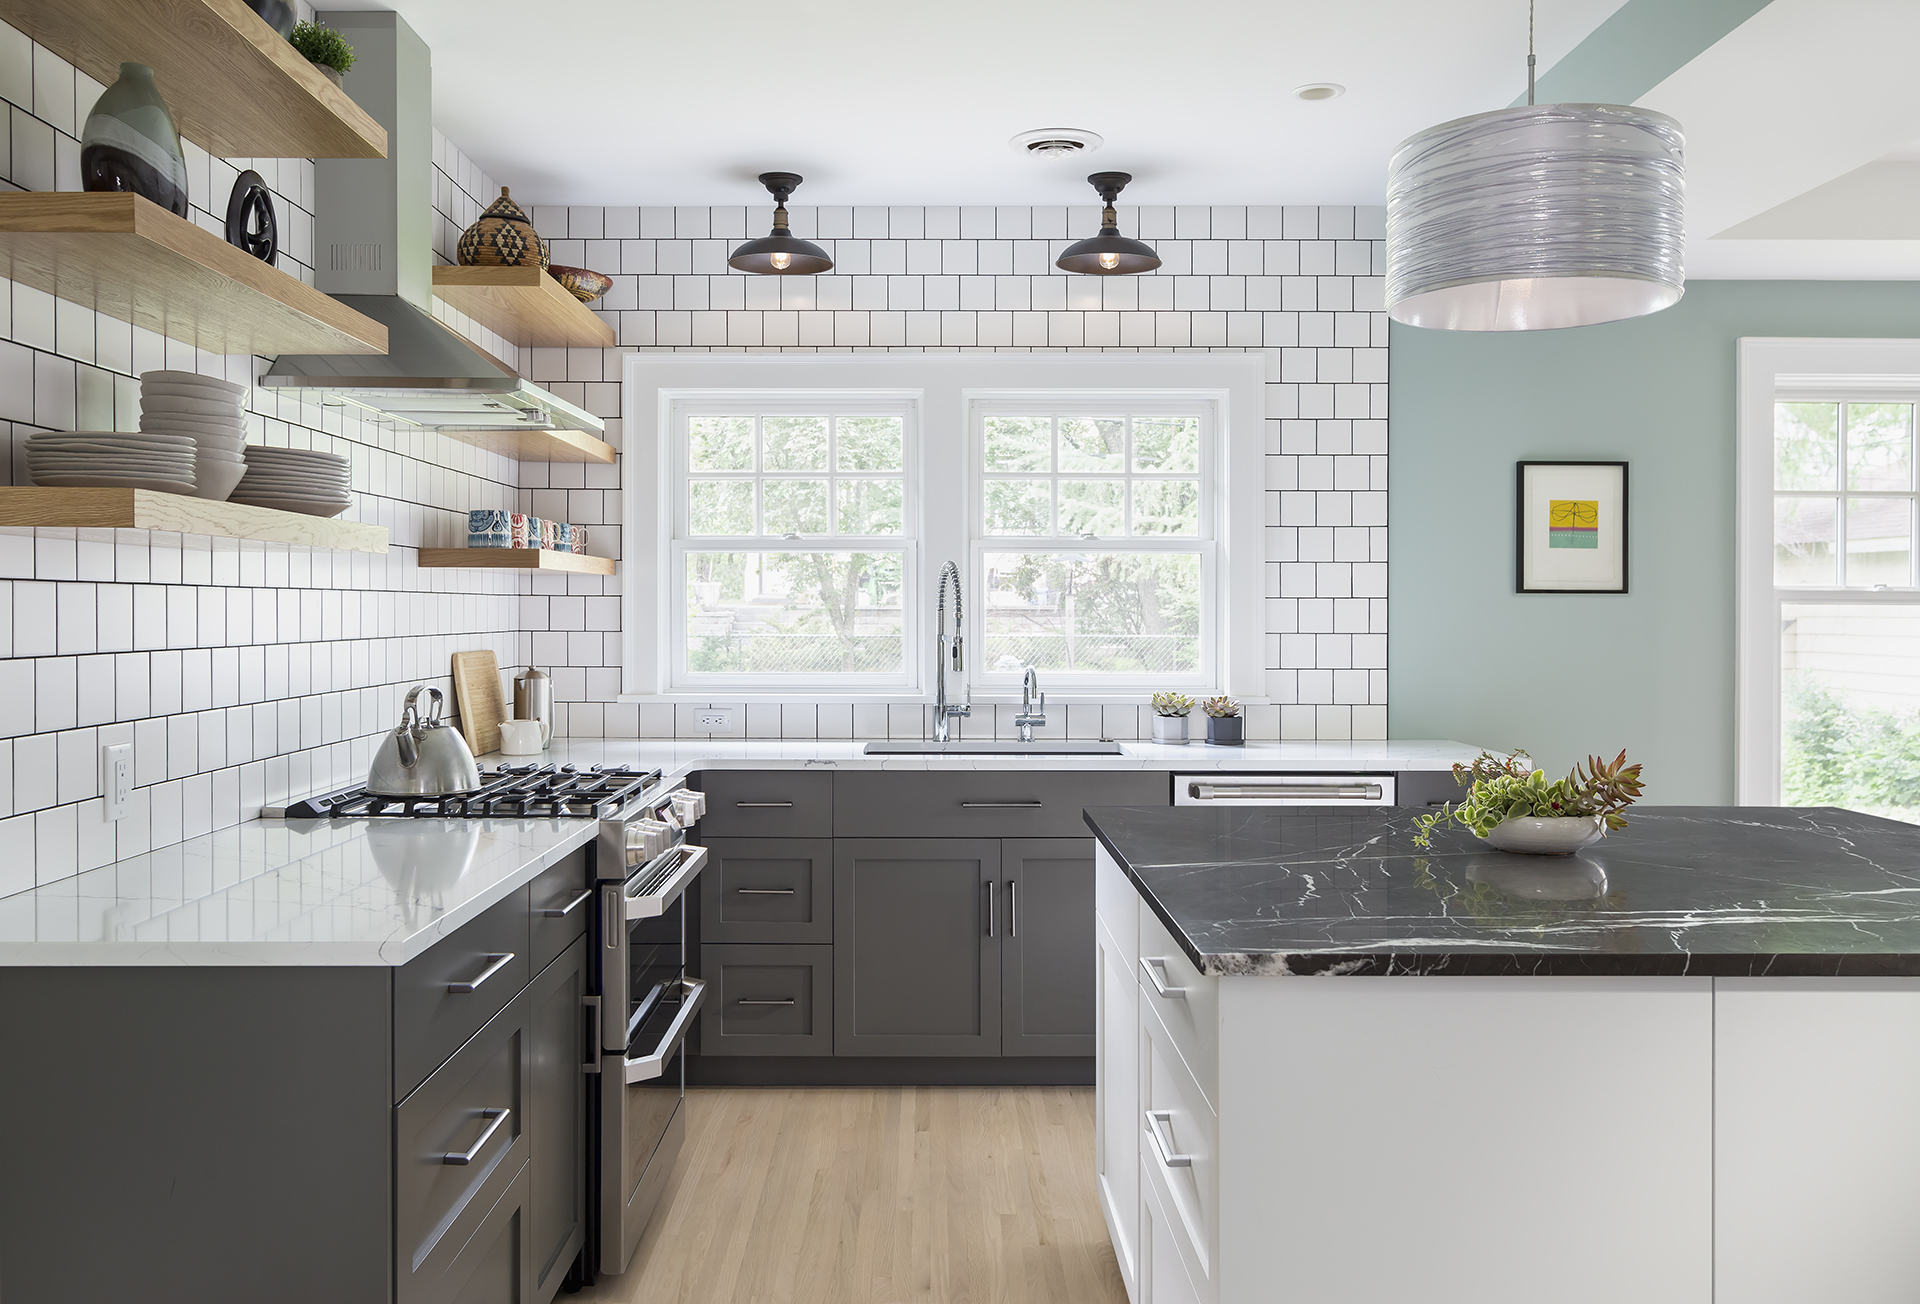 Kitchen_Windows_2018_06_11.jpg